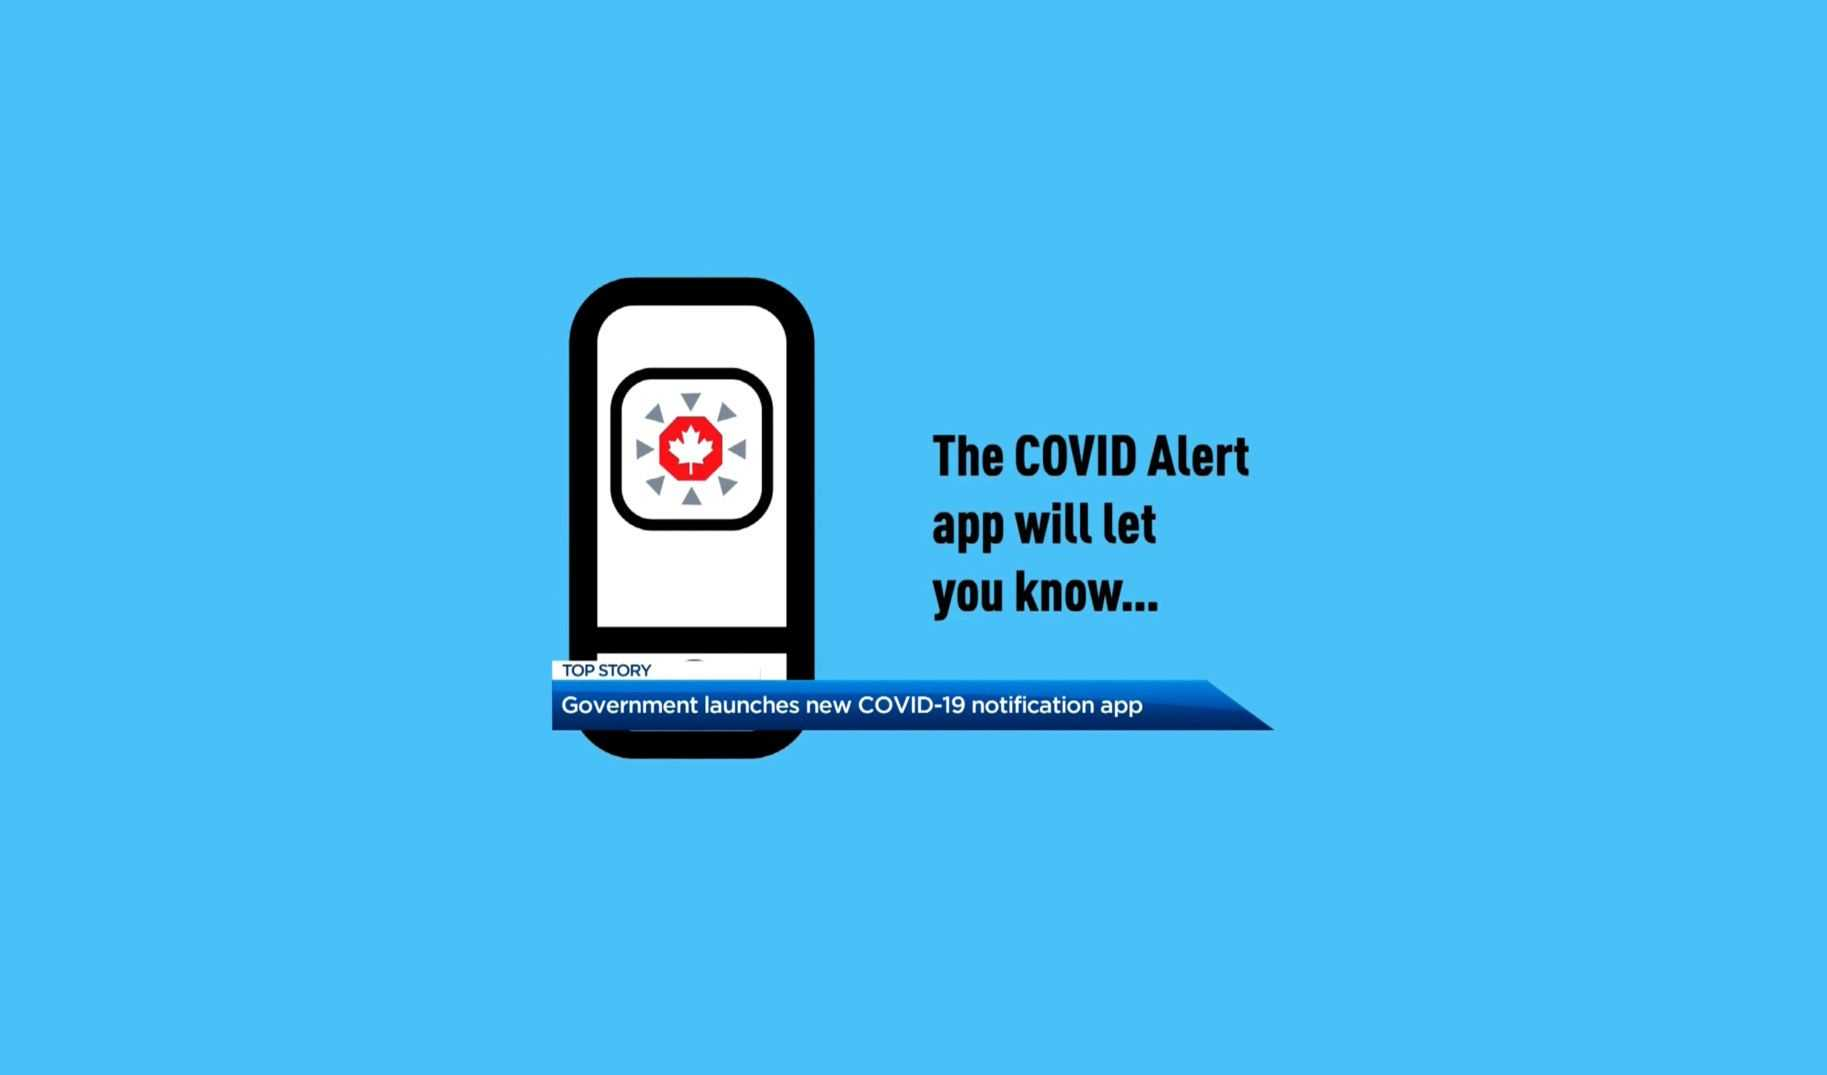 Covid Alert Mobile App Howto and Tips 2020 cover image